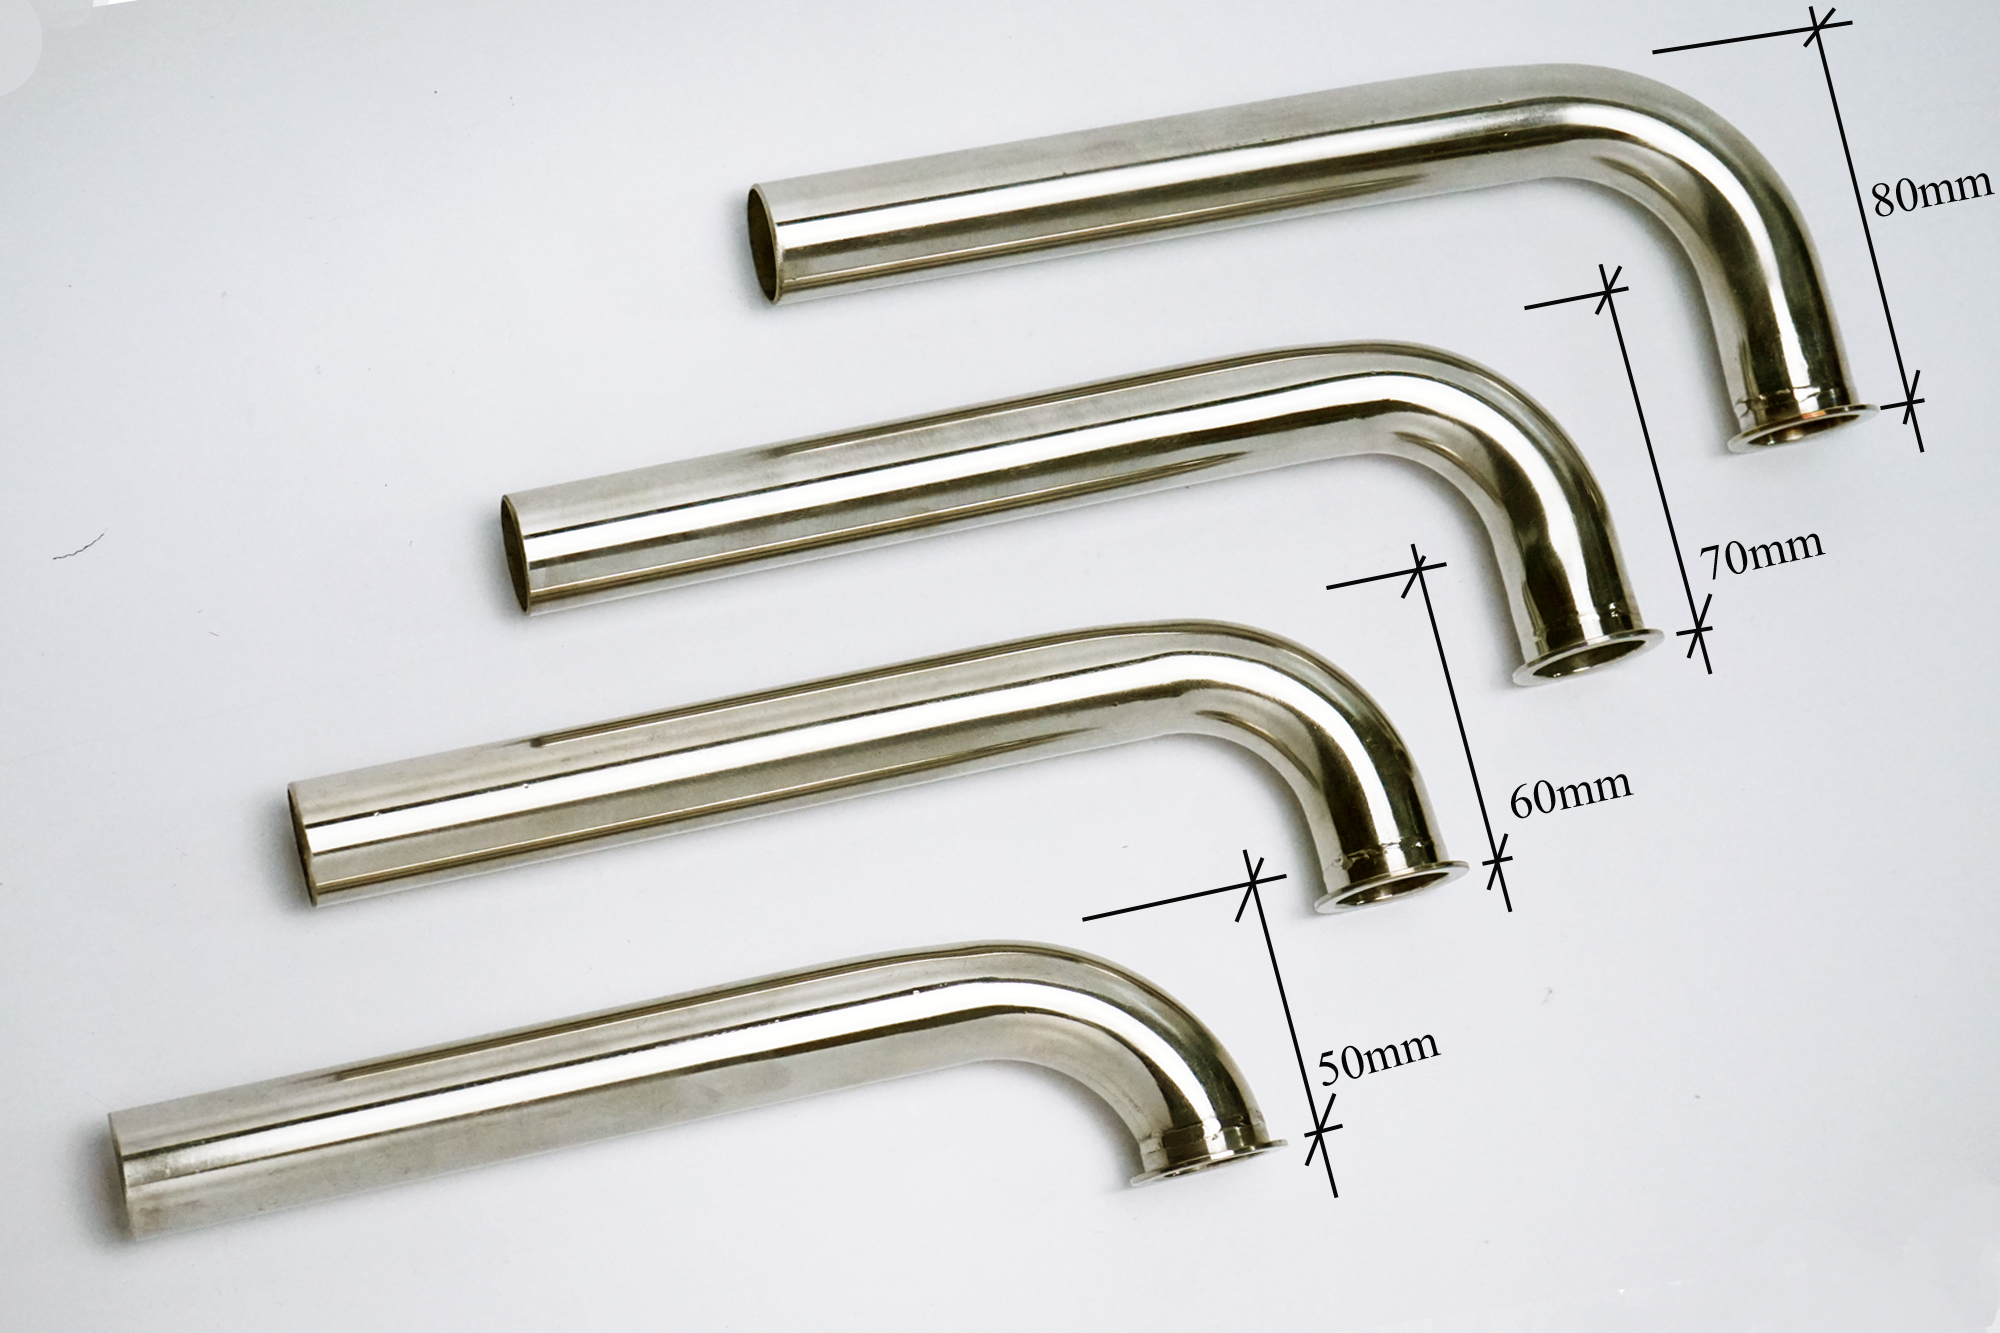 90 Degree Bend Width 50mm to 90mm Stainless Steel Header